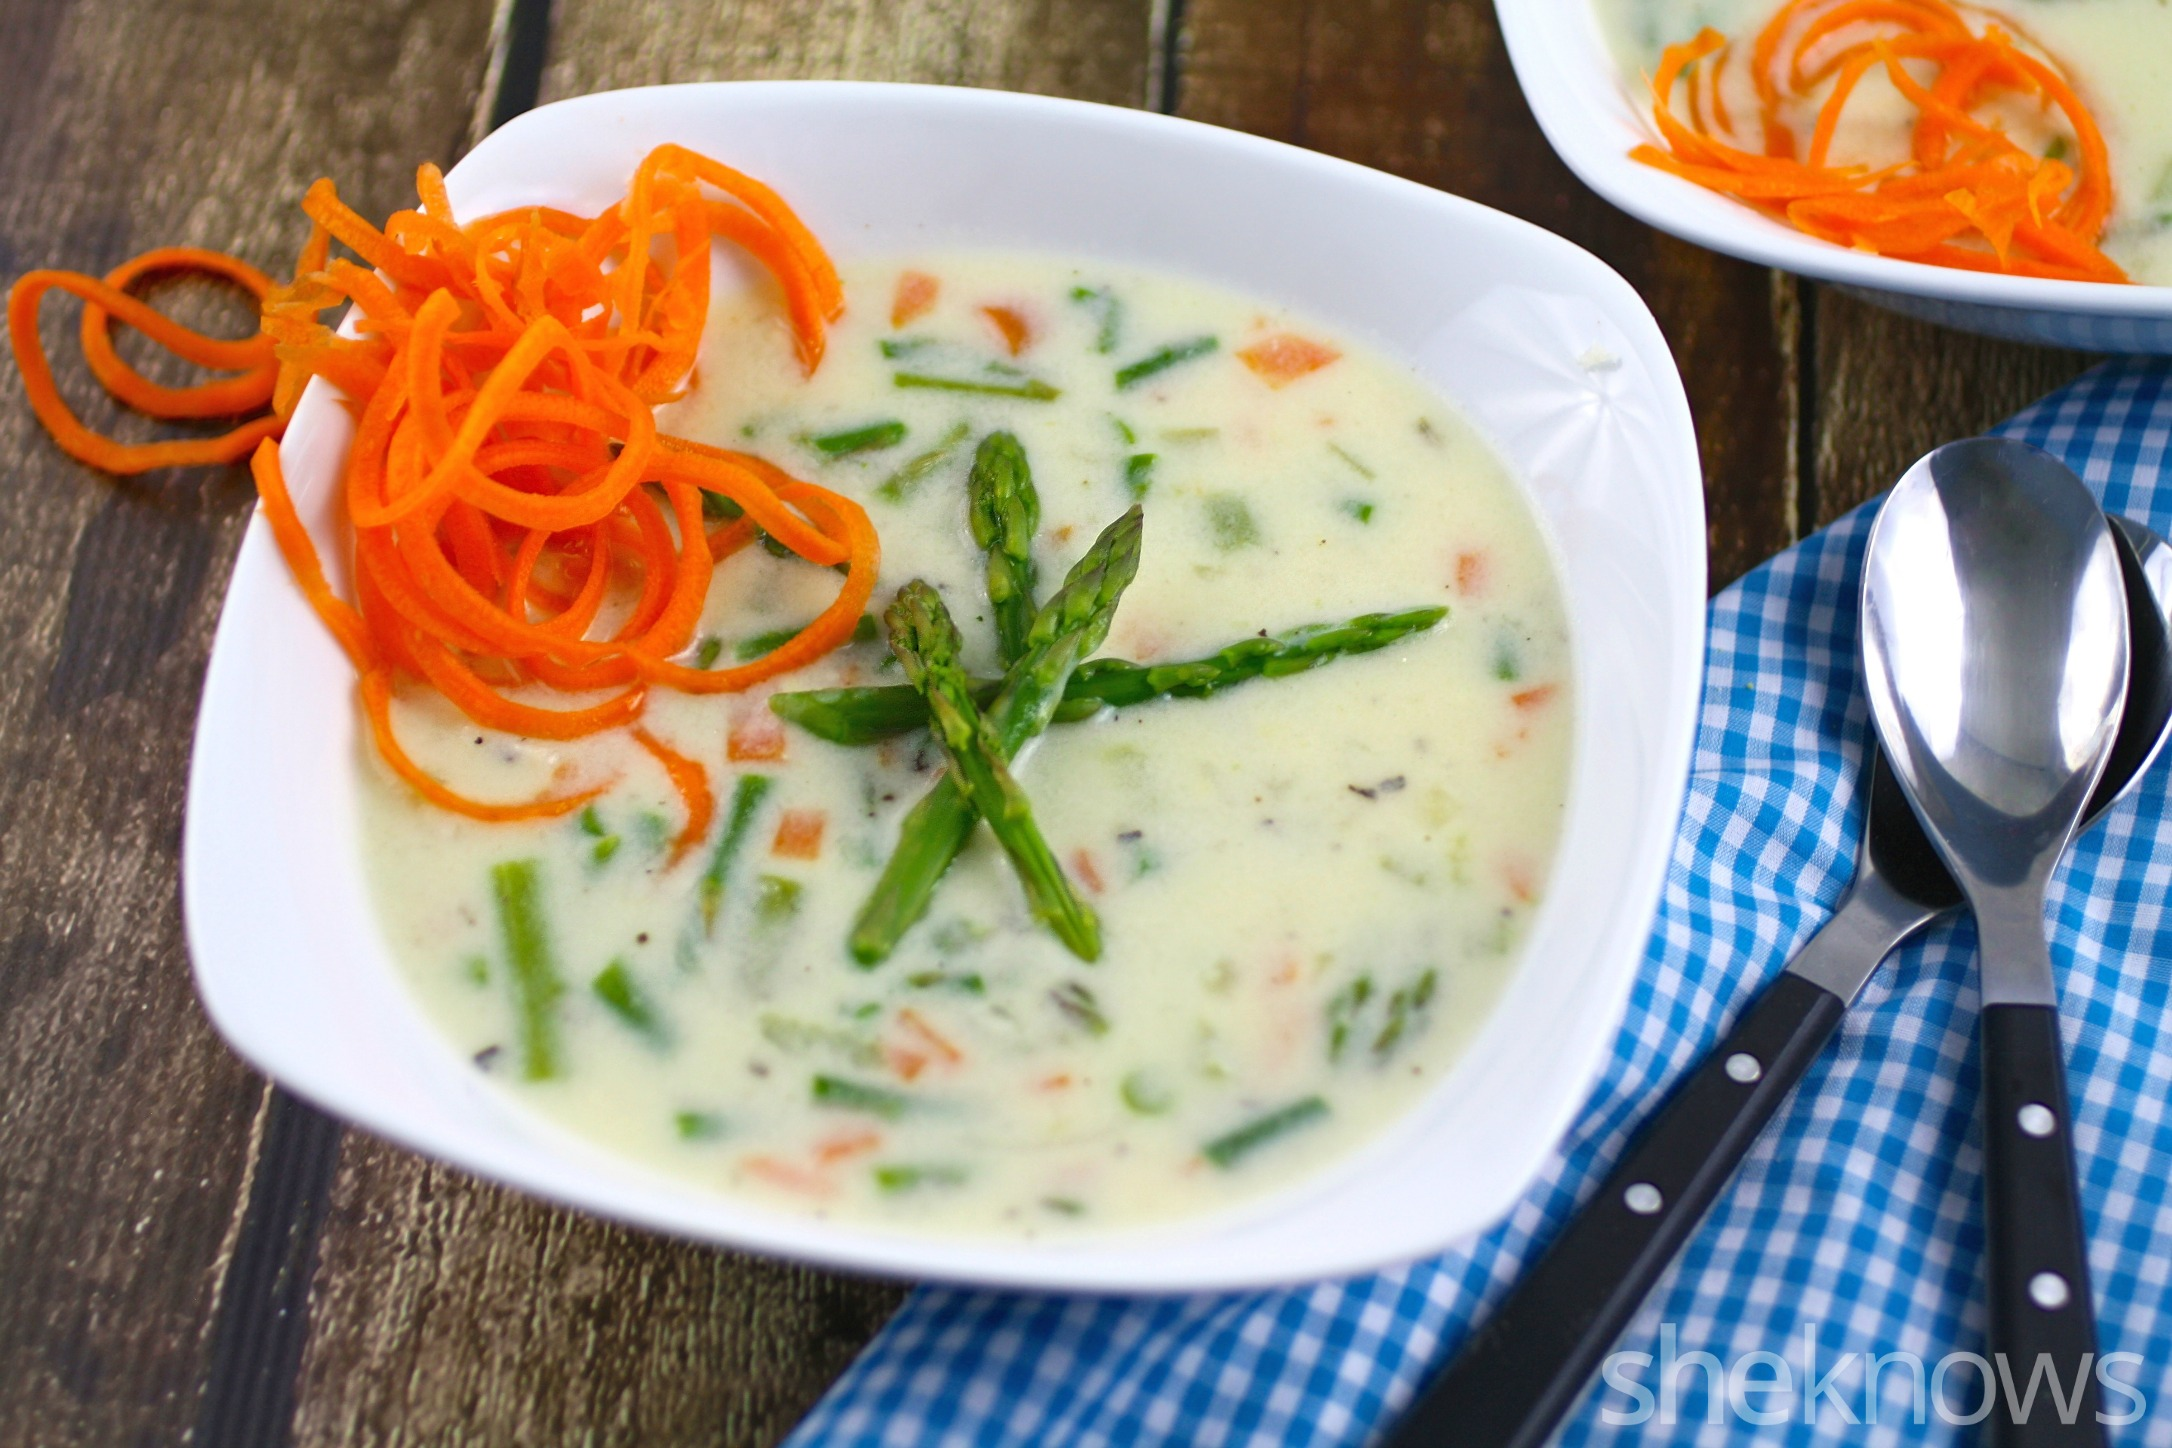 Warm up with a bowl of cheesy asparagus chowder with carrot curl garnish